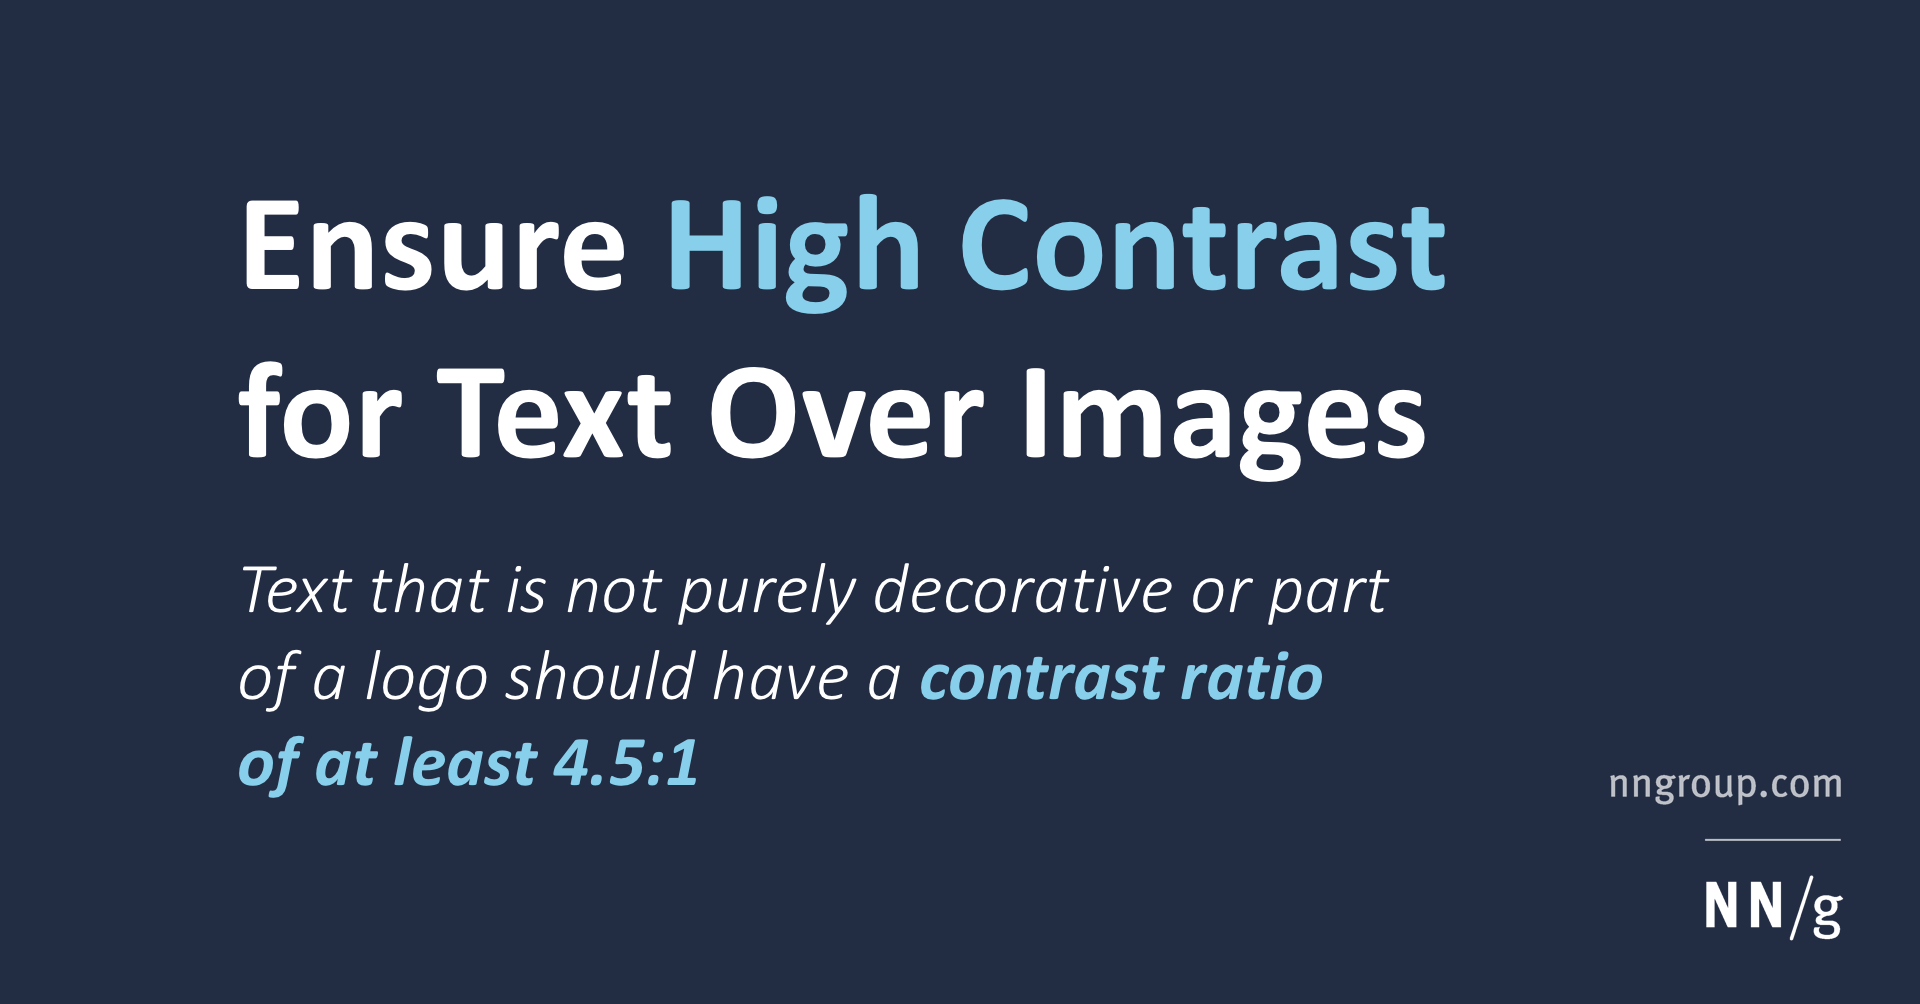 Ensure High Contrast for Text Over Images